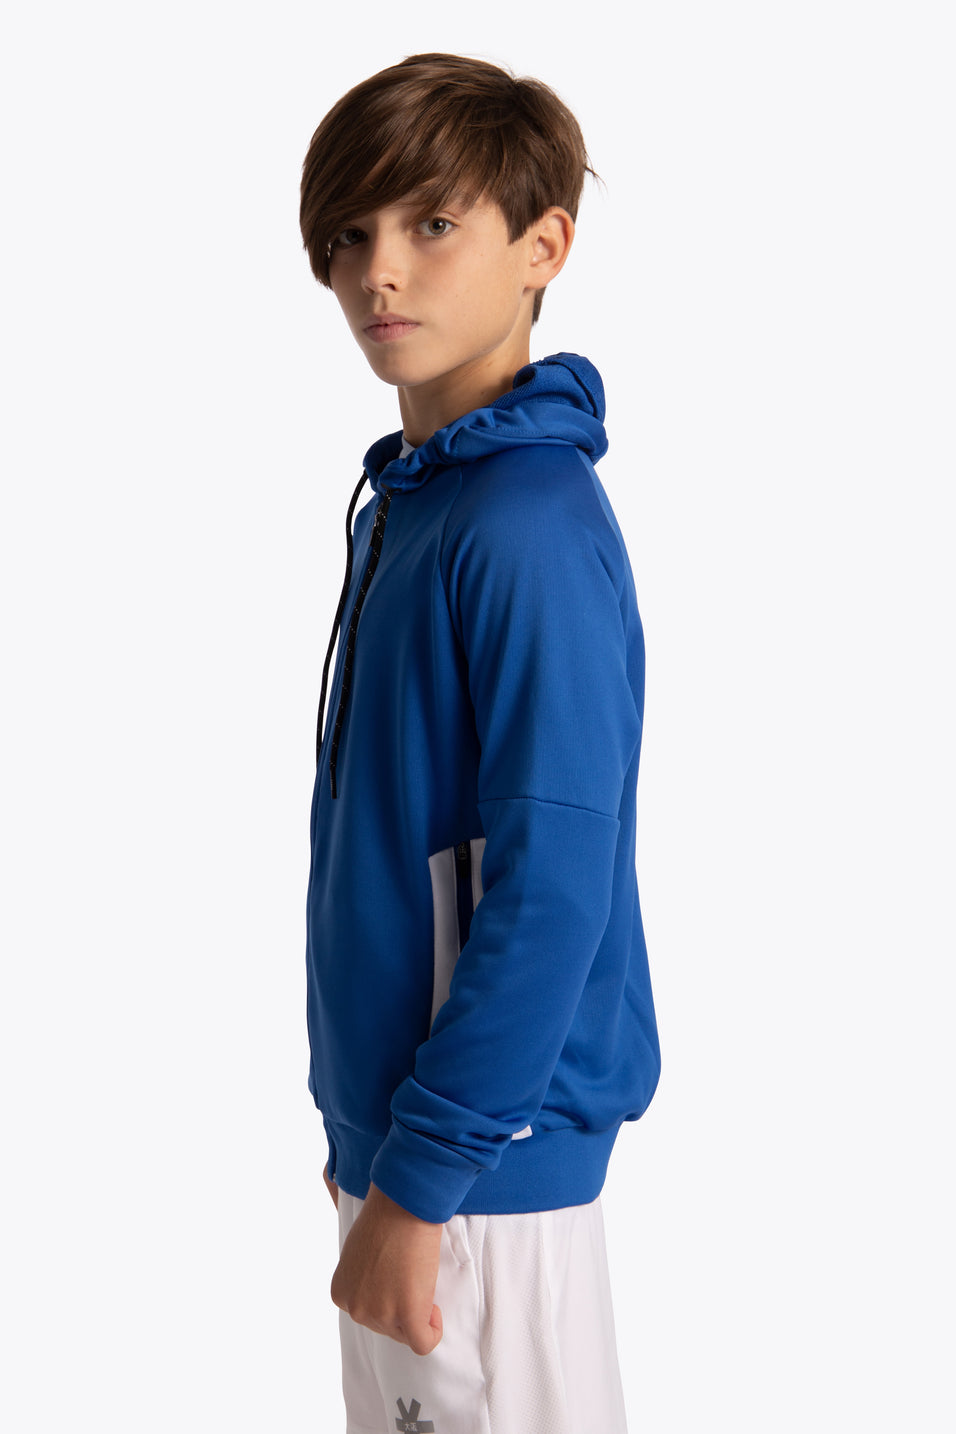 Deshi Training Zip Hoodie - Royal Blue